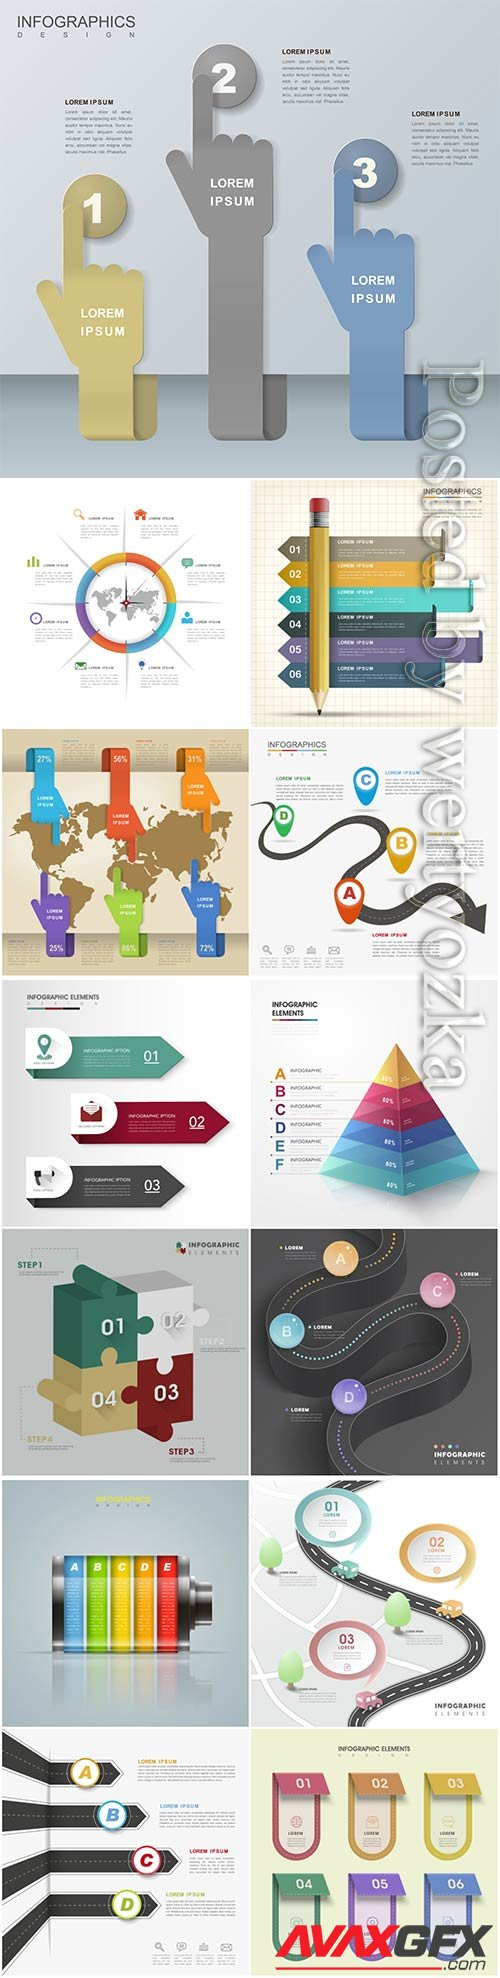 Infographic design elements premium vector